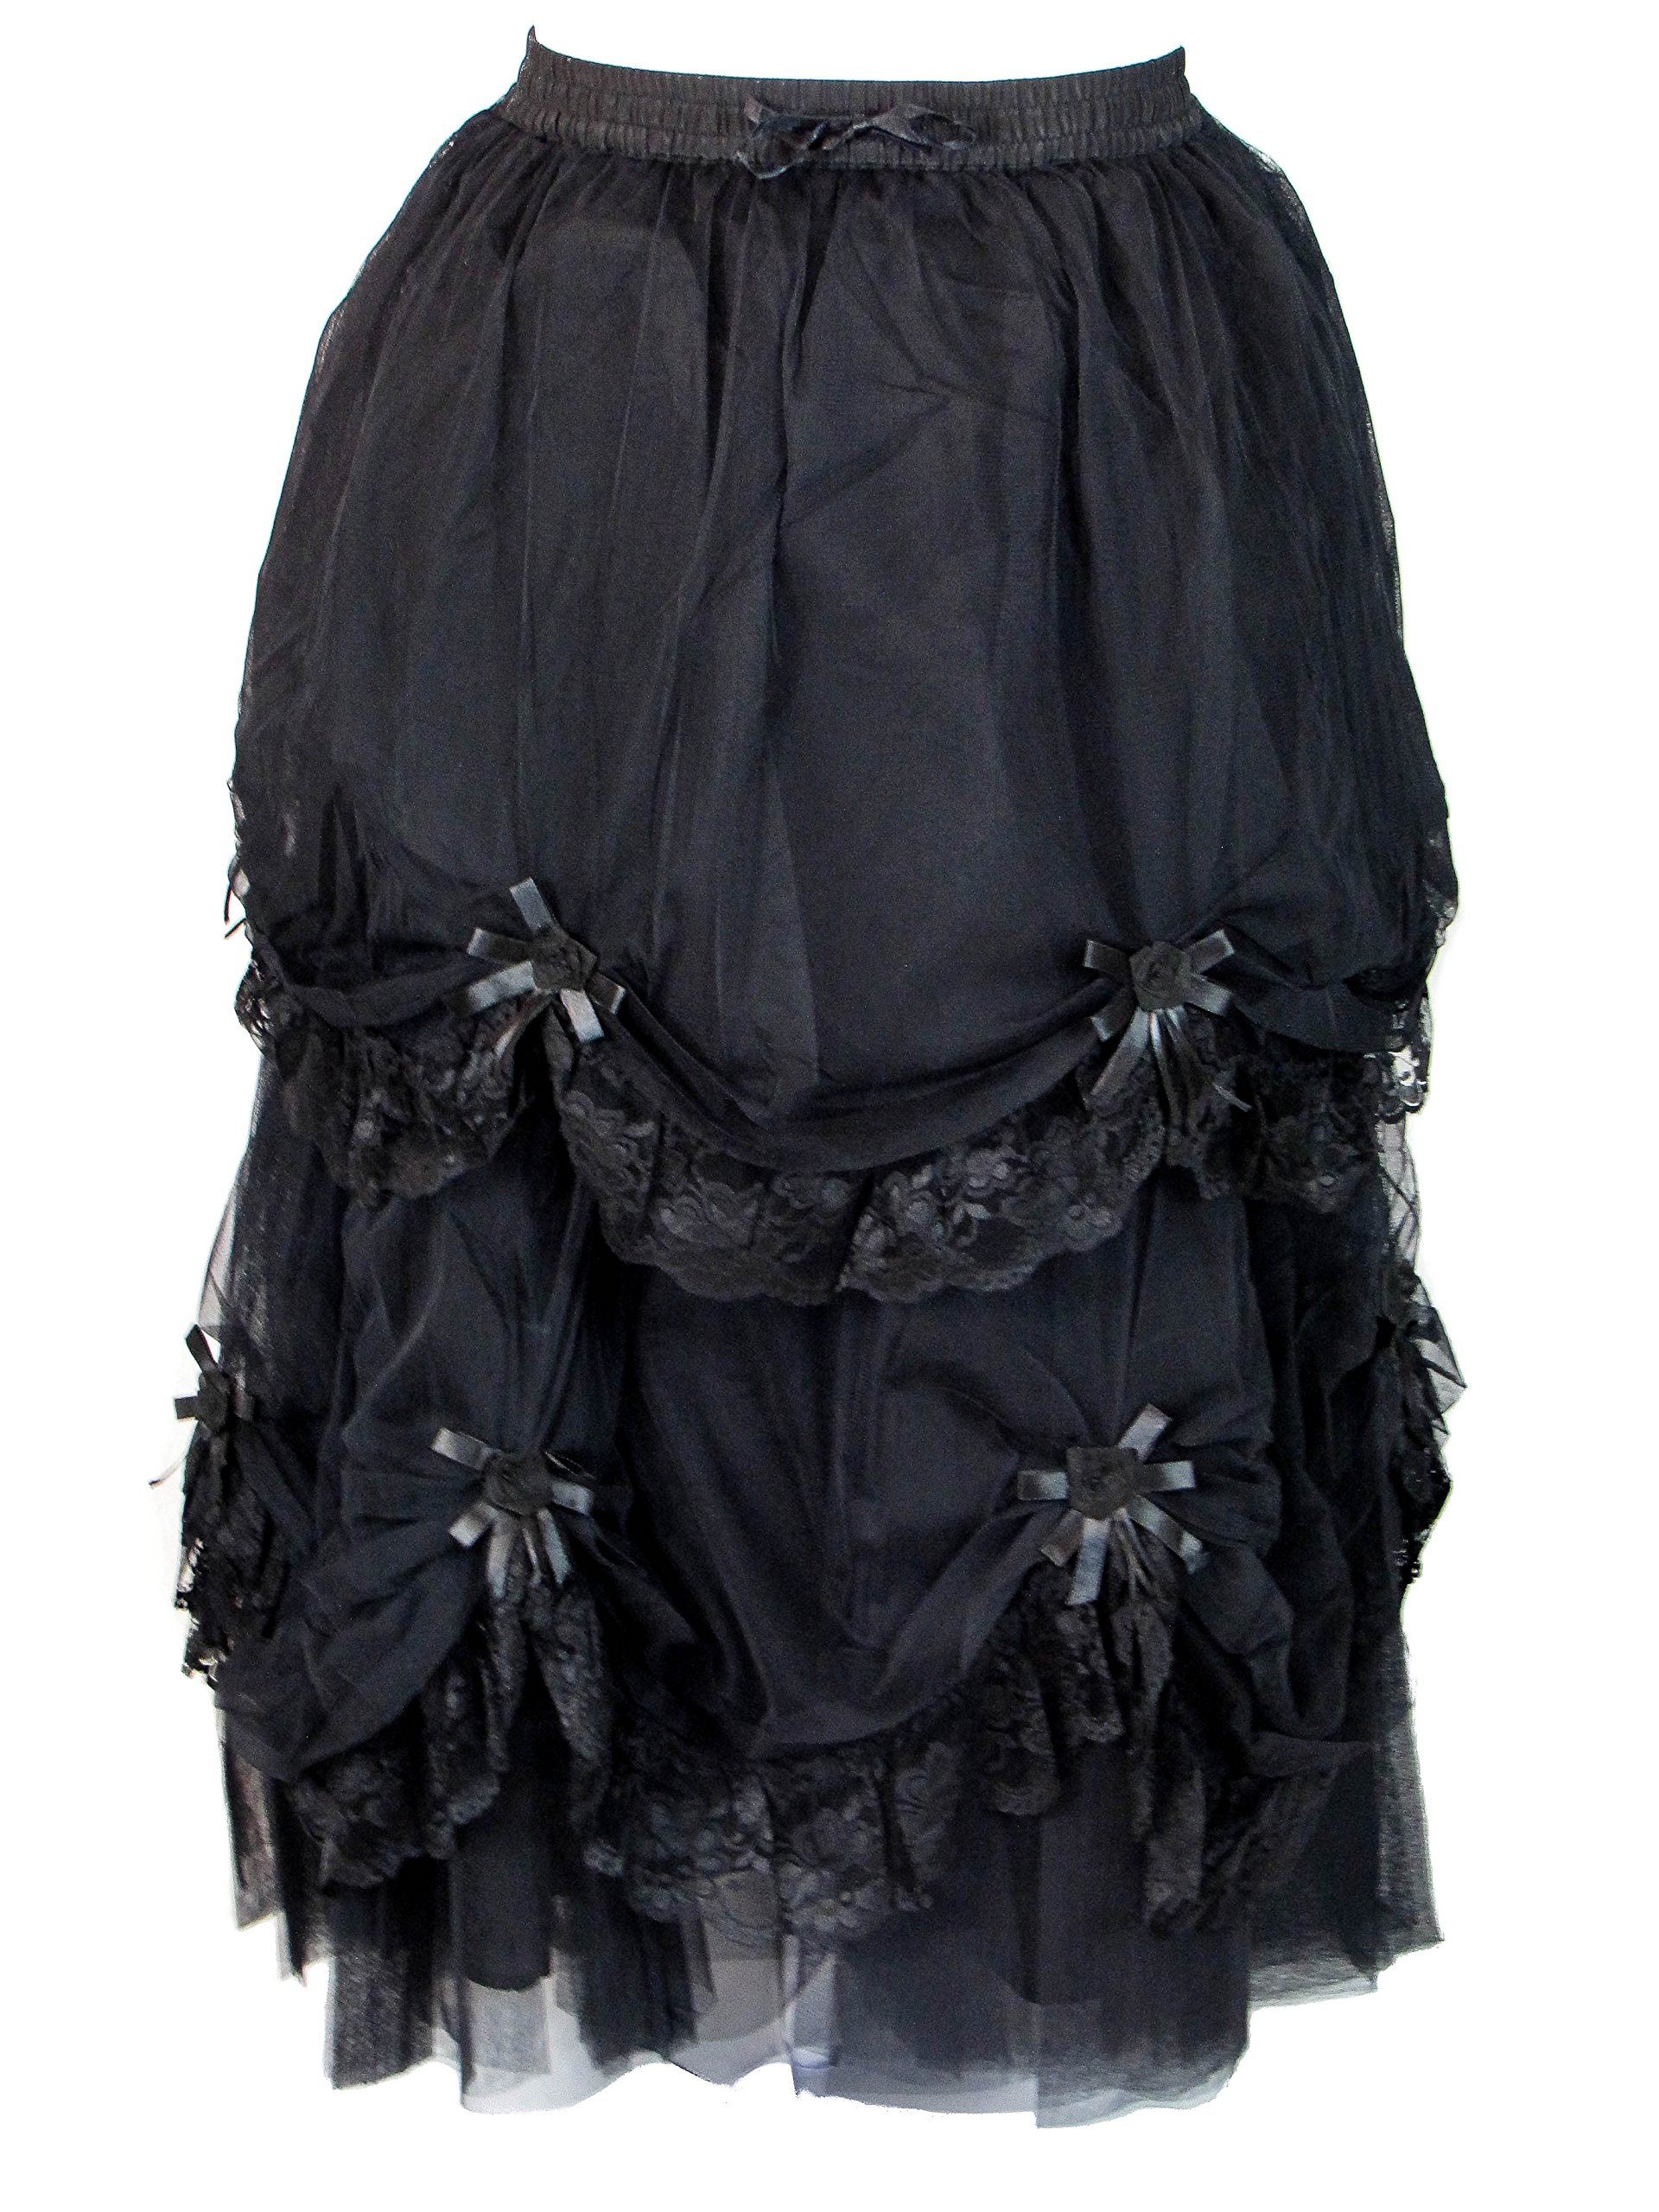 Dark Star Plus Size Long Black Satin Roses Gothic Medieval Fairytale Skirt L-2X (FITS L-2X)